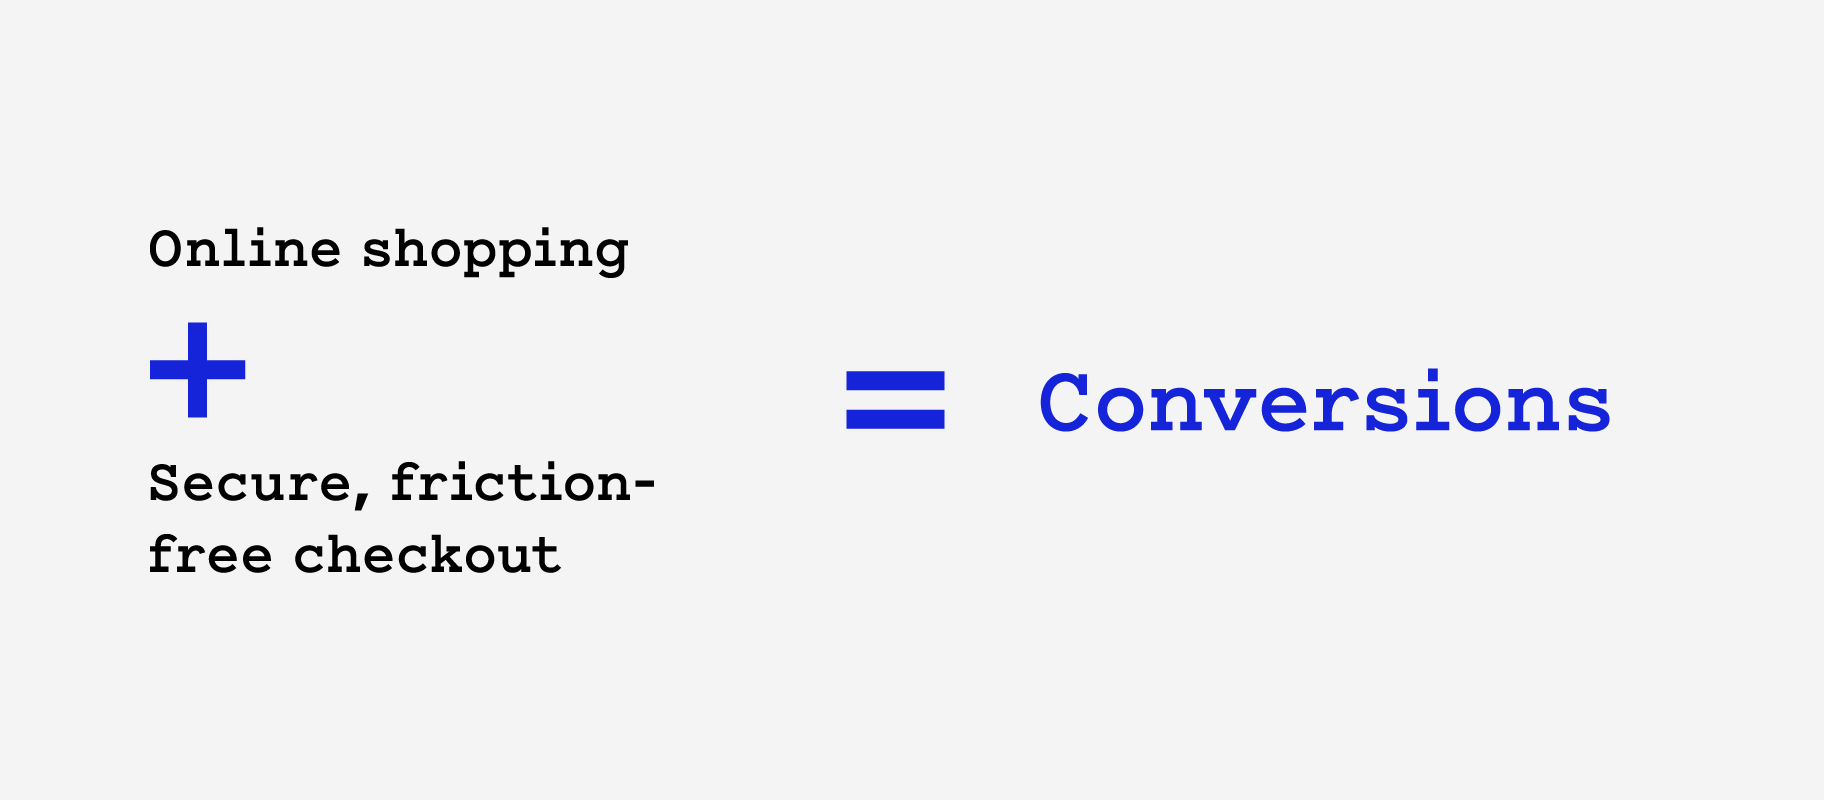 Experience equation conversions